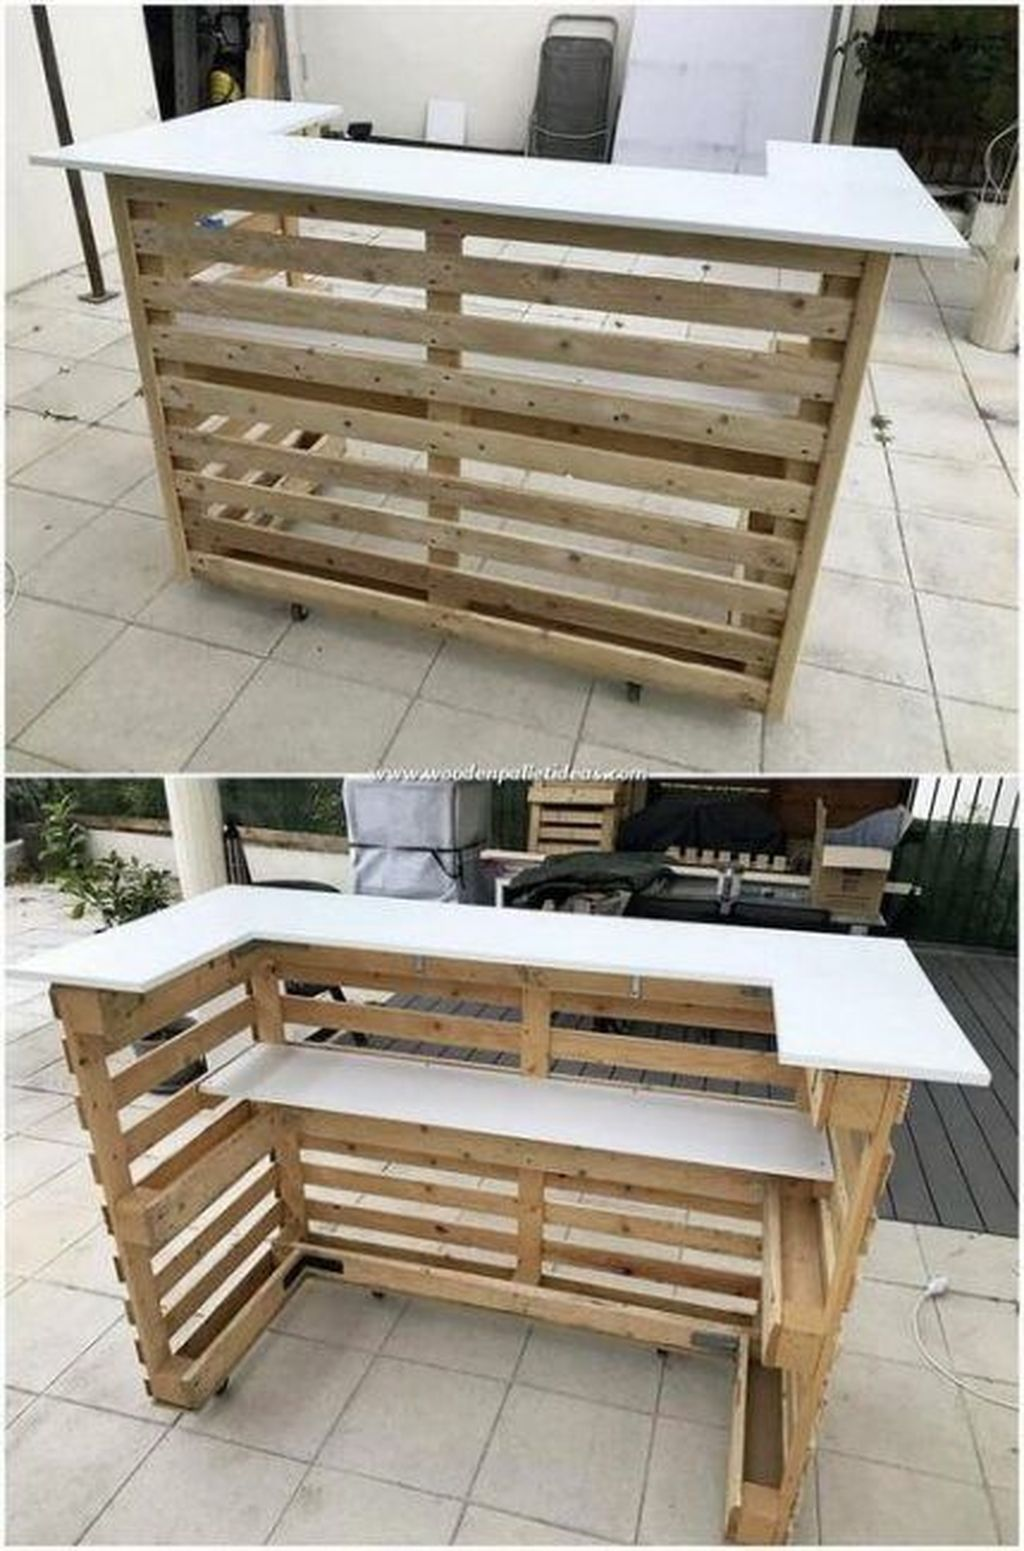 34 Trendy Wood Pallet Furniture Design Ideas To Increase ...